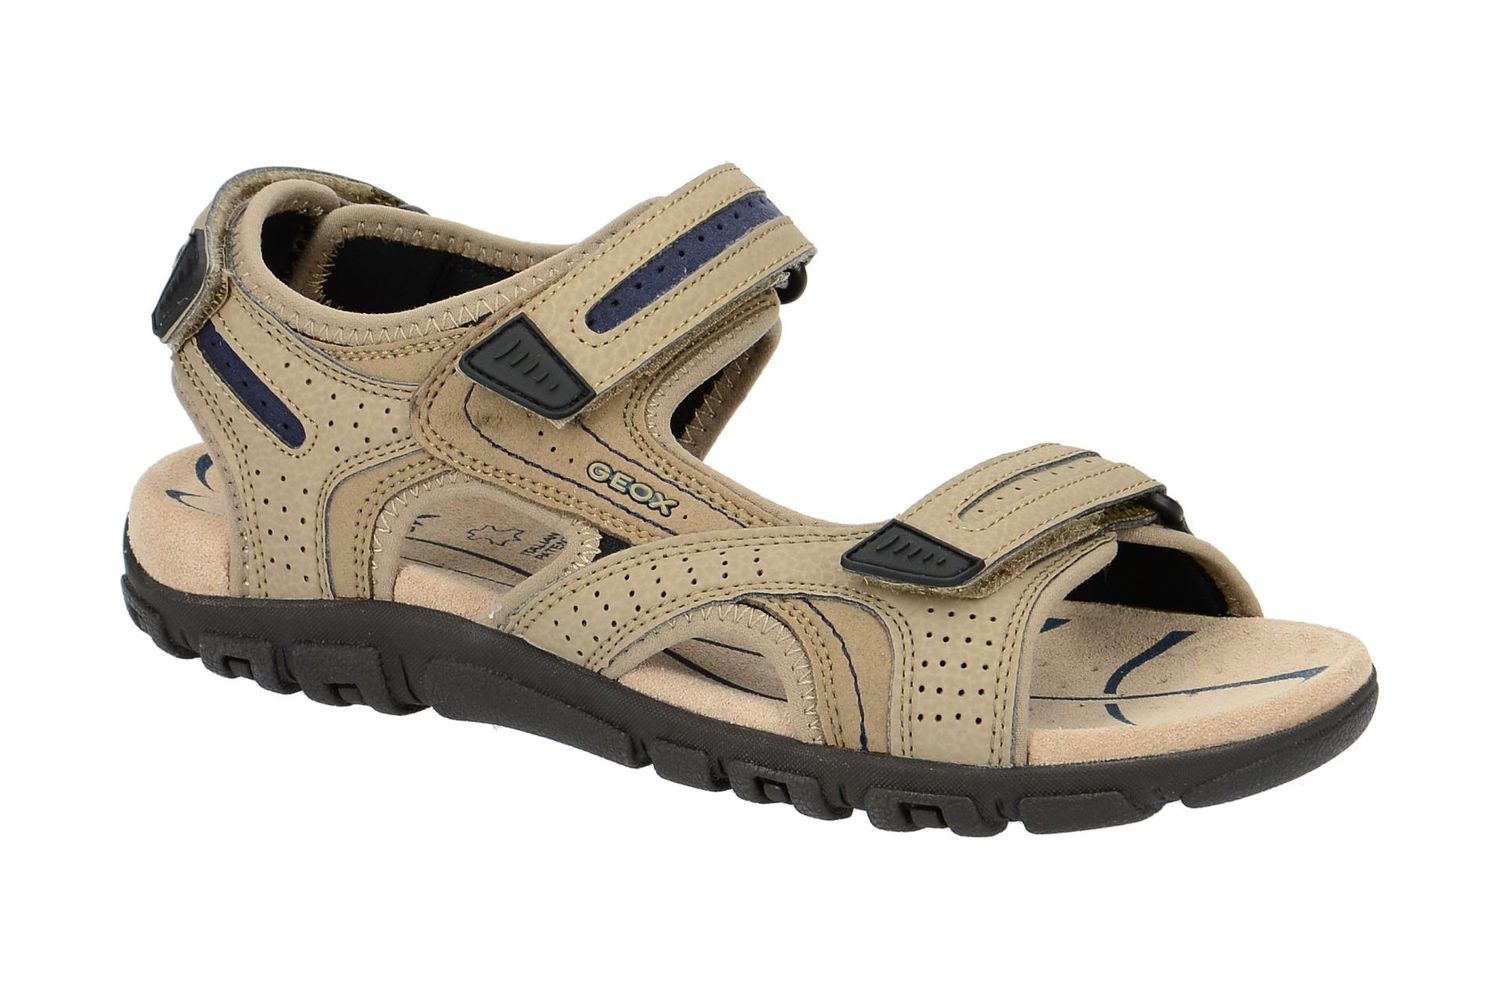 0cc5aabfd51 Details about Geox Repsira Uomo Sandal Strada D Men s Sandals U8224D Sand